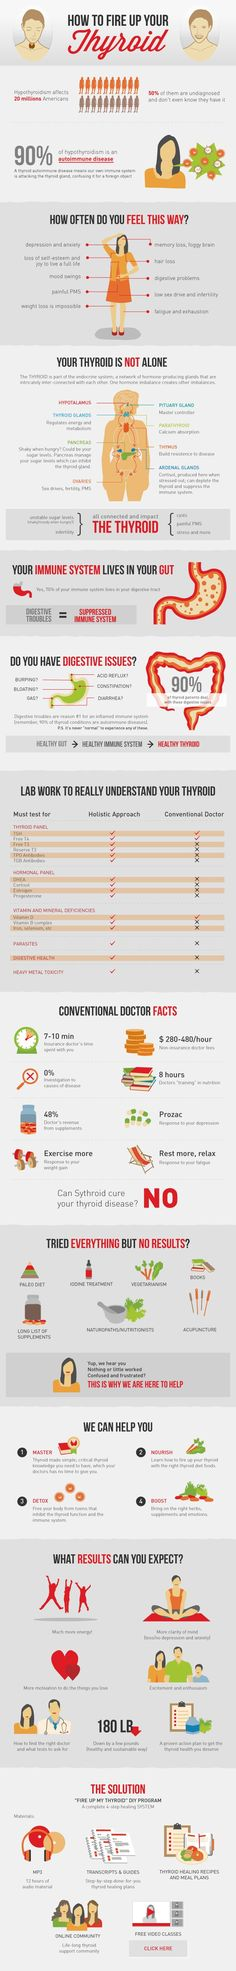 Hypothyroidism Diet - Thyroid Healing Program Infographic Thyrotropin levels and risk of fatal coronary heart disease: the HUNT study. Thyroid Disease, Heart Disease, Low Thyroid, Thyroid Hormone, Thyroid Issues, Thyroid Gland, Thyroid Symptoms, Autoimmune Disease, Thyroid Levels